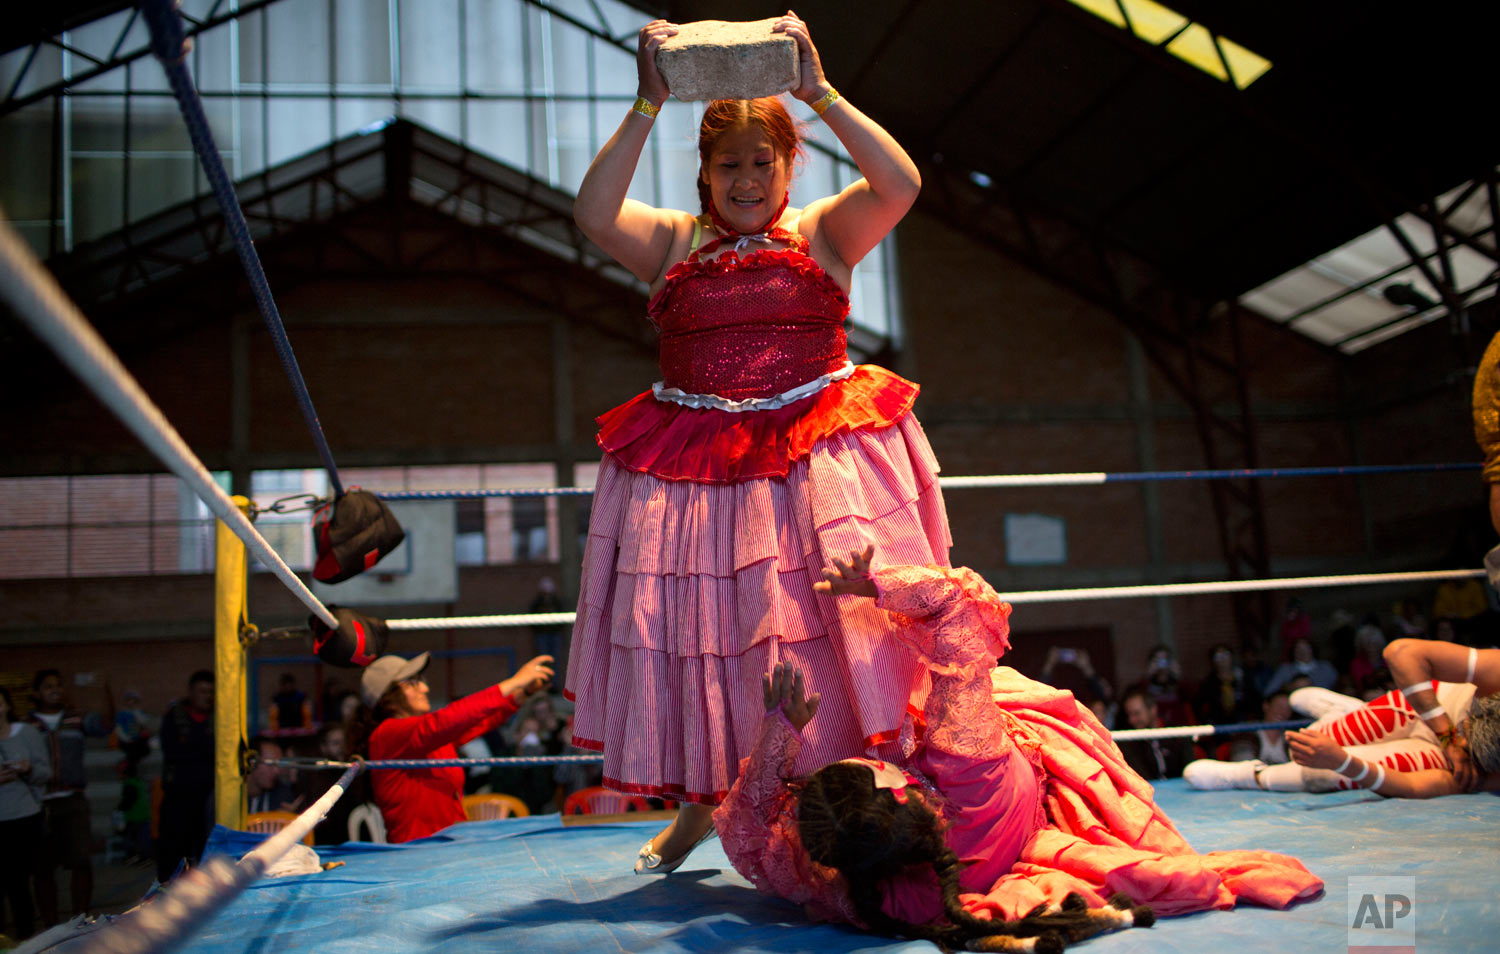 Veteran cholita wrestler Jennifer dos Caras, 45, holds a cement block over teen wrestler Lucero la Bonita in the ring in El Alto, Bolivia, Monday, Jan. 21, 2019. (AP Photo/Juan Karita)